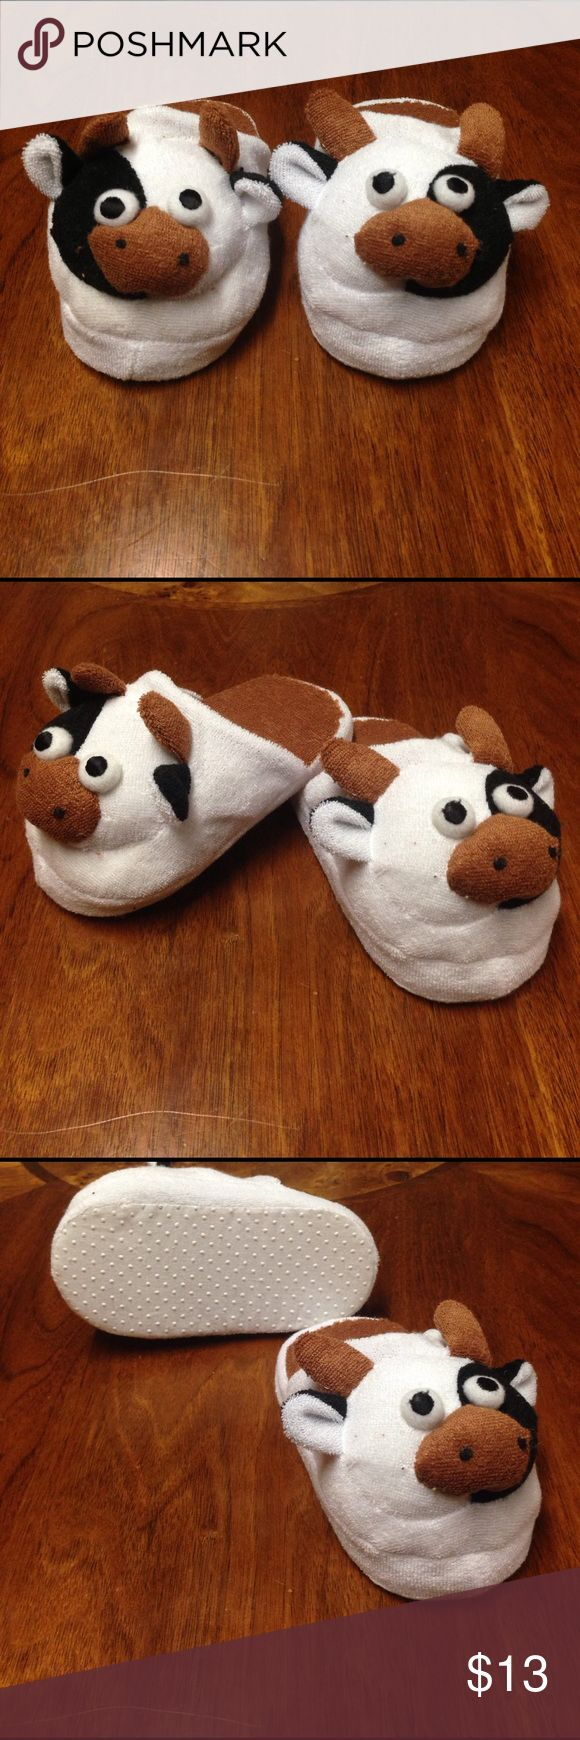 """NWOT 6"""" Cow Slippers-- I have 10 pairs available Cow slippers NWOT size 6"""" unbranded Shoes Slippers"""